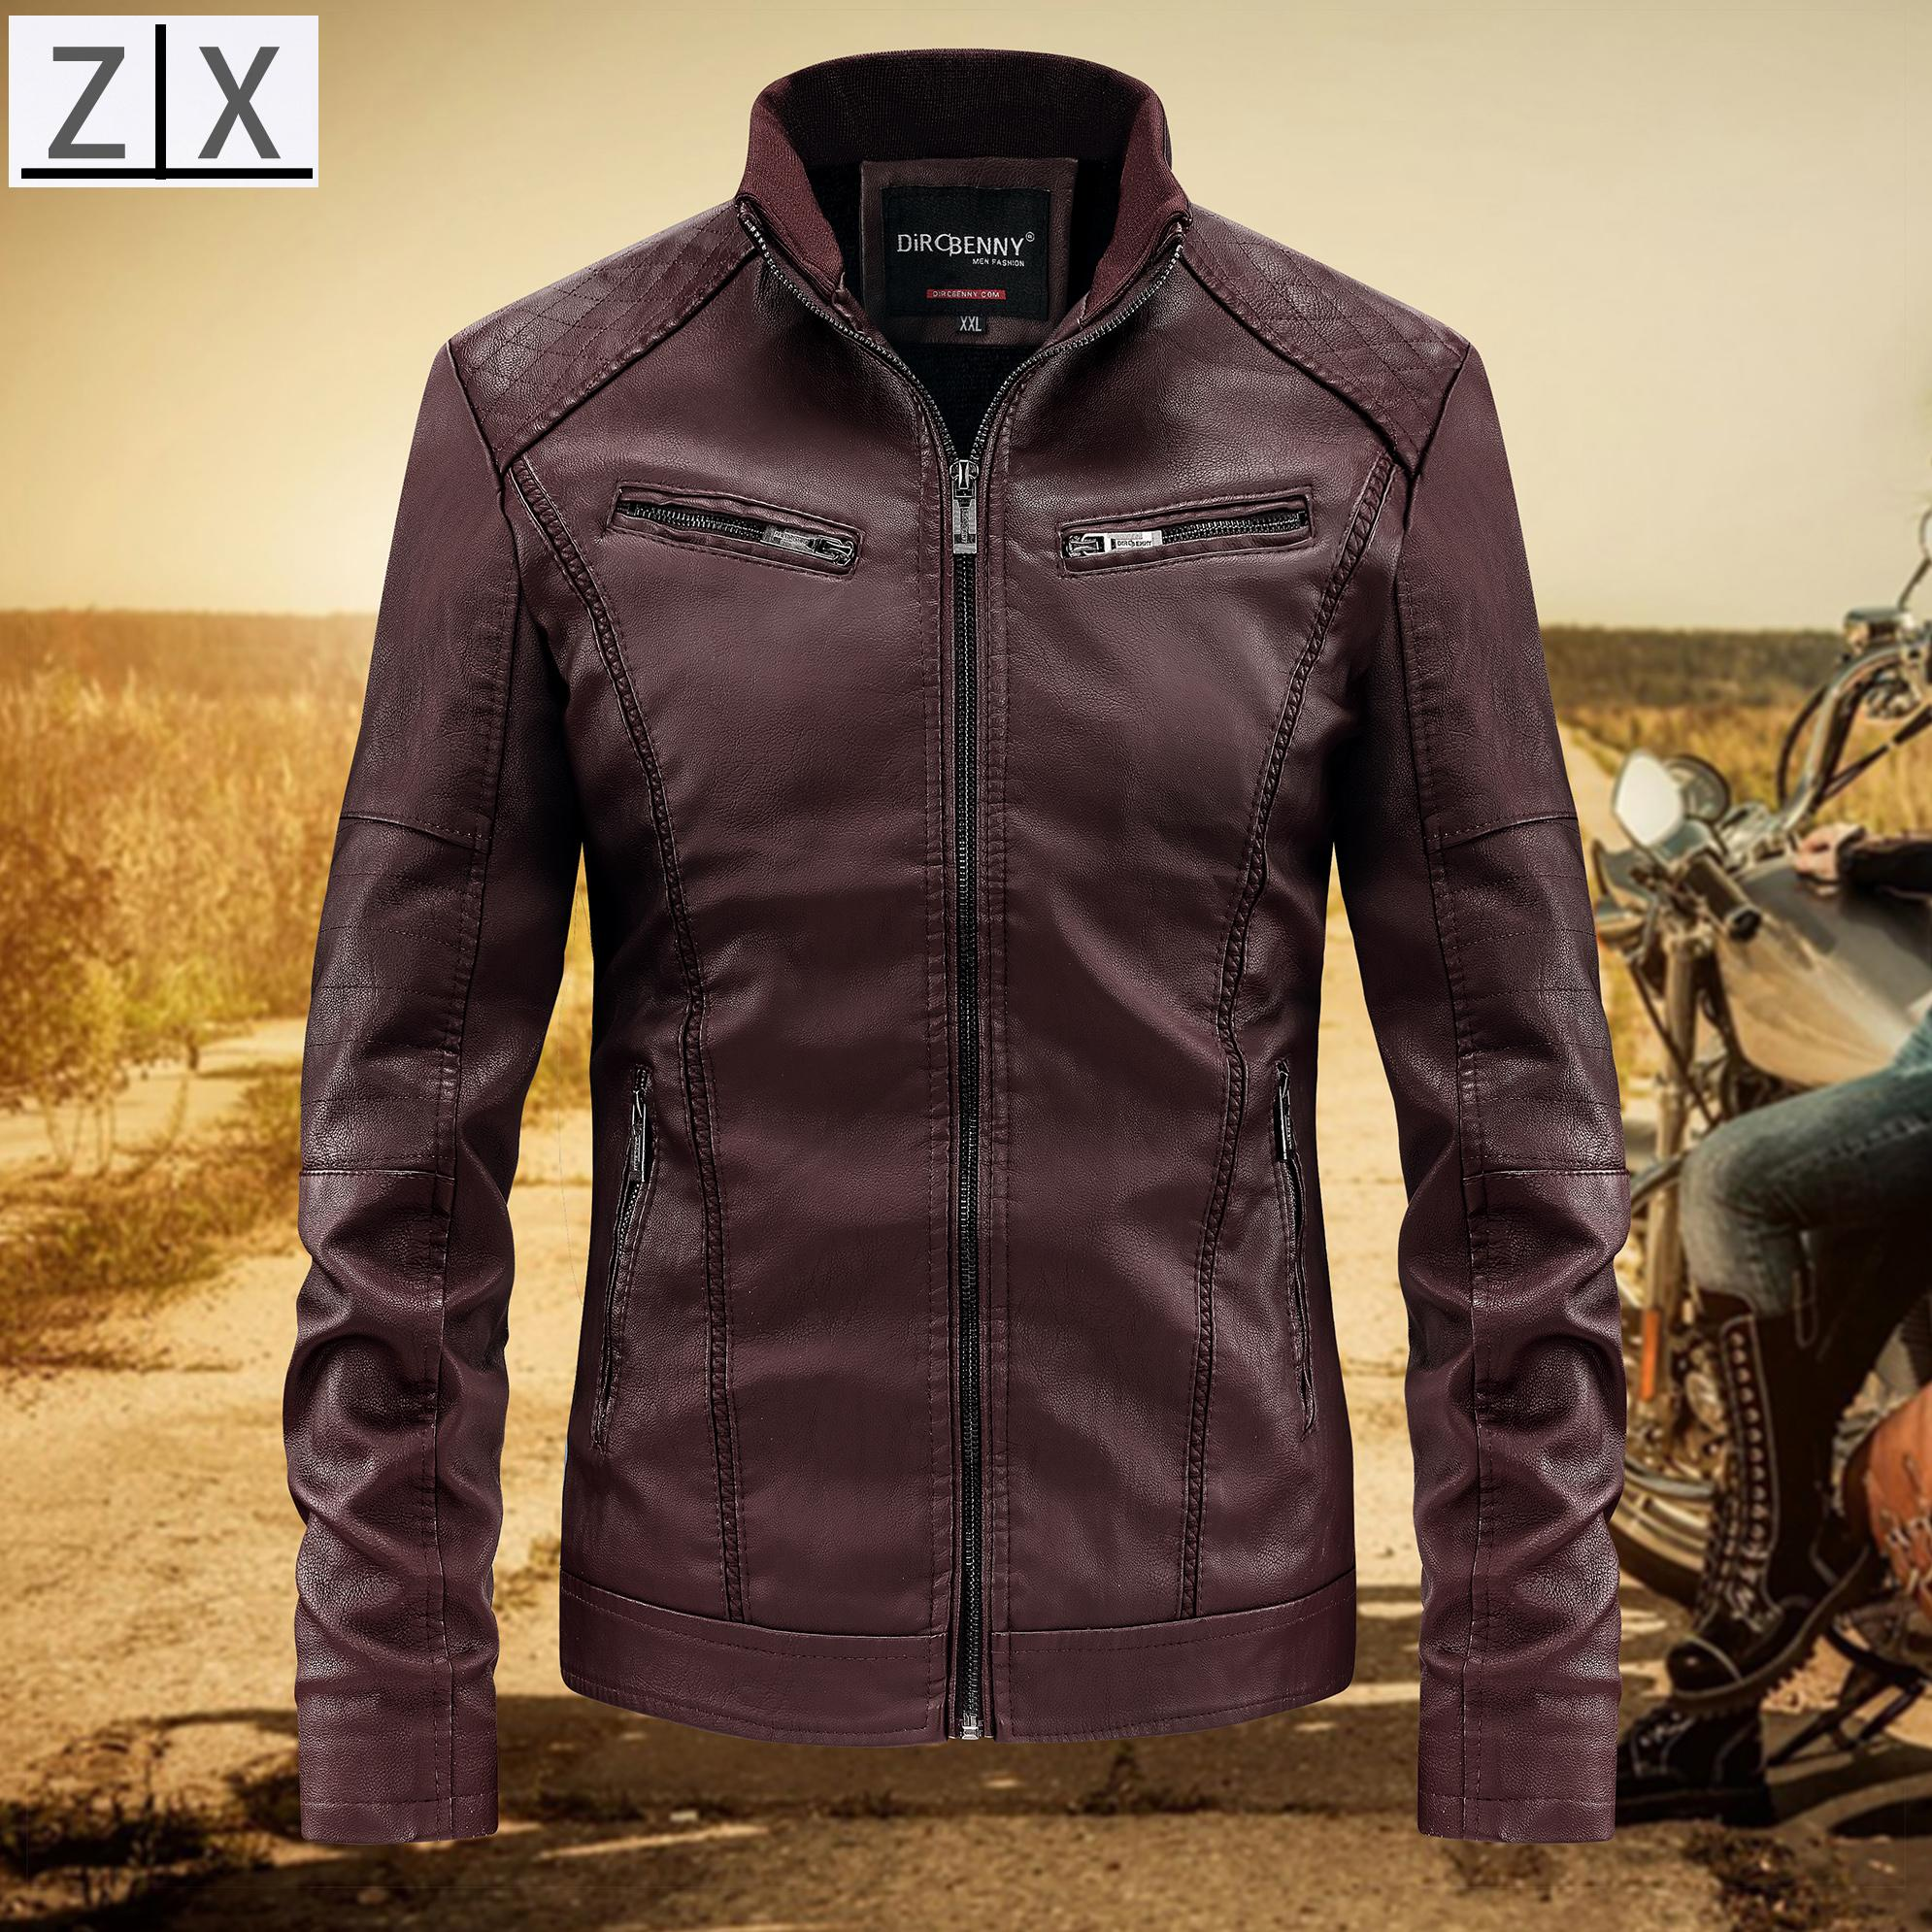 e792671ed Jackets for Men for sale - Mens Coat Jackets Online Deals & Prices ...